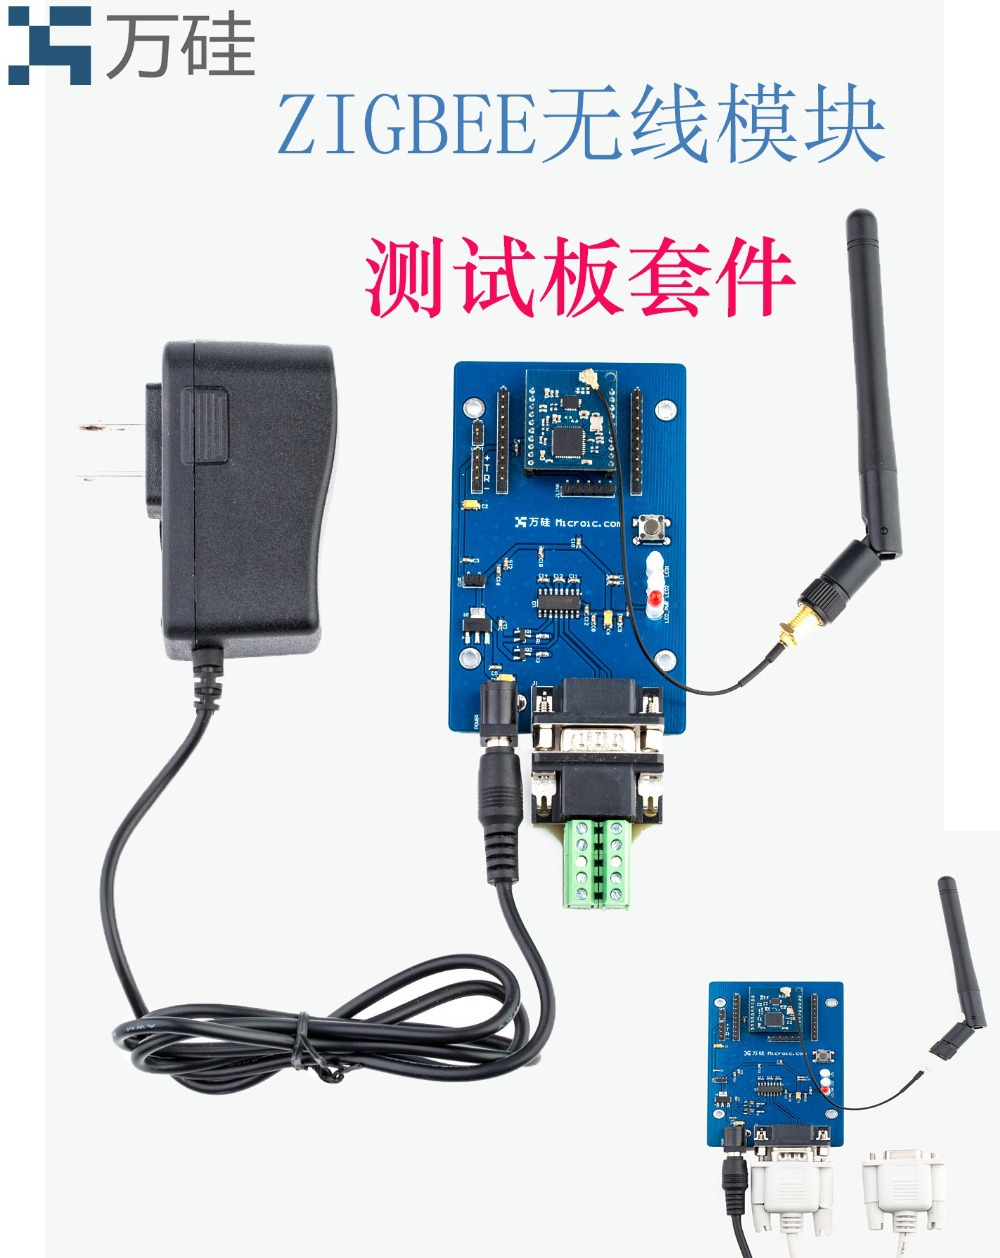 Free Shipping   ZIGBEE DEV-IM-T1 Wireless Module Testing Board Kit ZIGBEE Development Board With Power Antenna